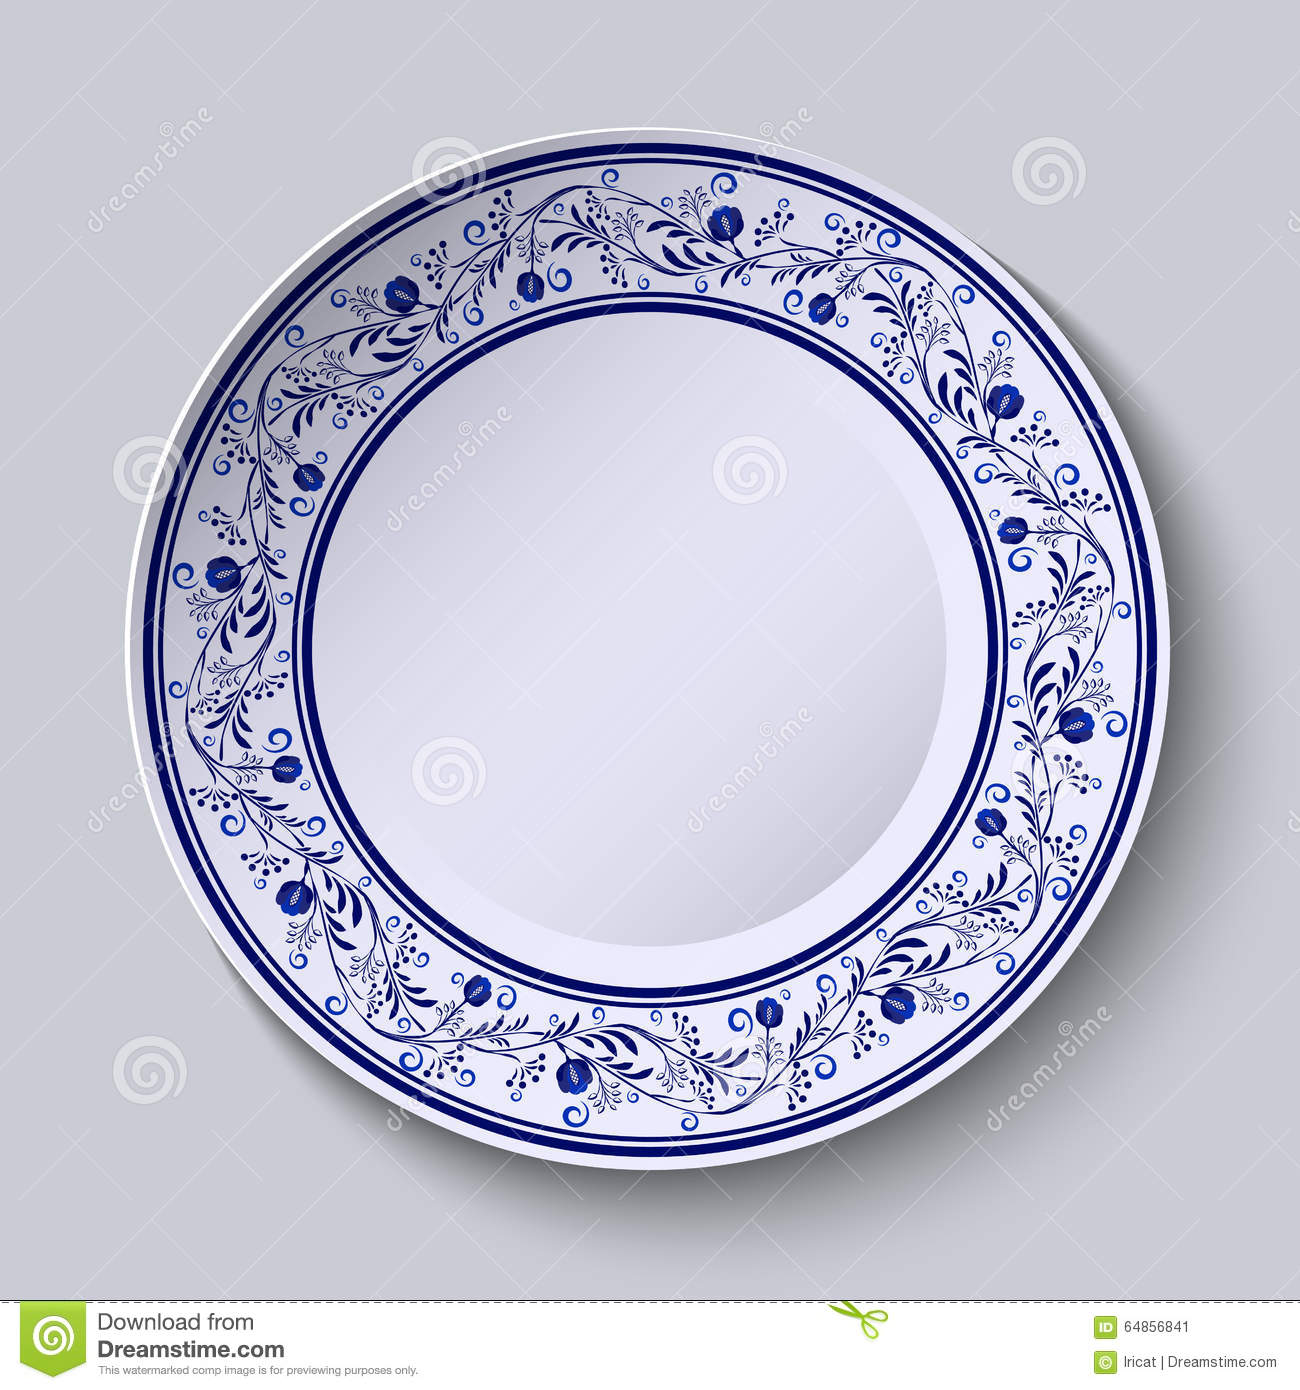 Plate With Blue Patterned Border. Template Design In Ethnic Style ...